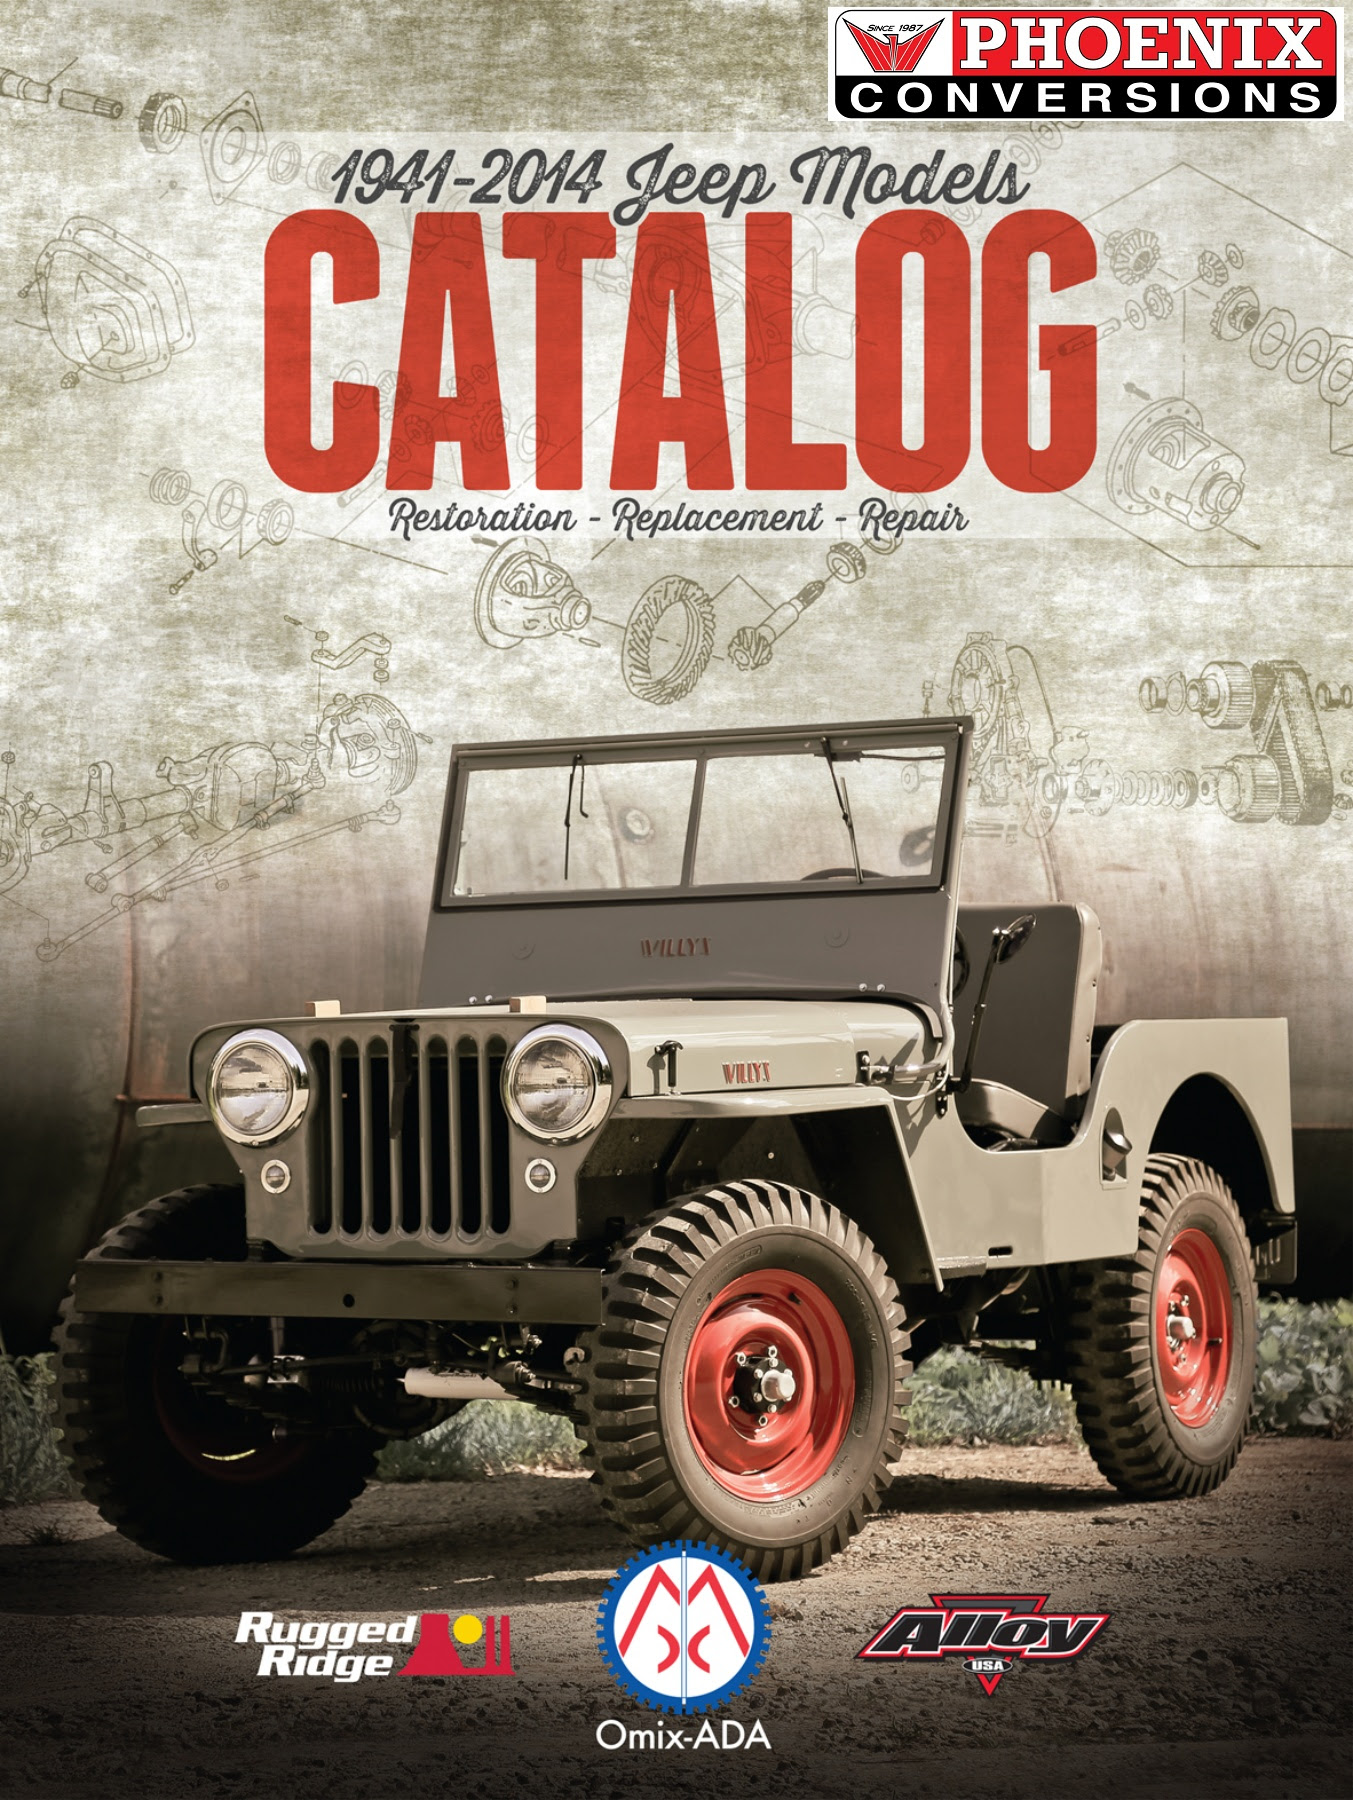 Classic Jeep Parts : classic, parts, Jeep:, Classic, Parts, Catalog